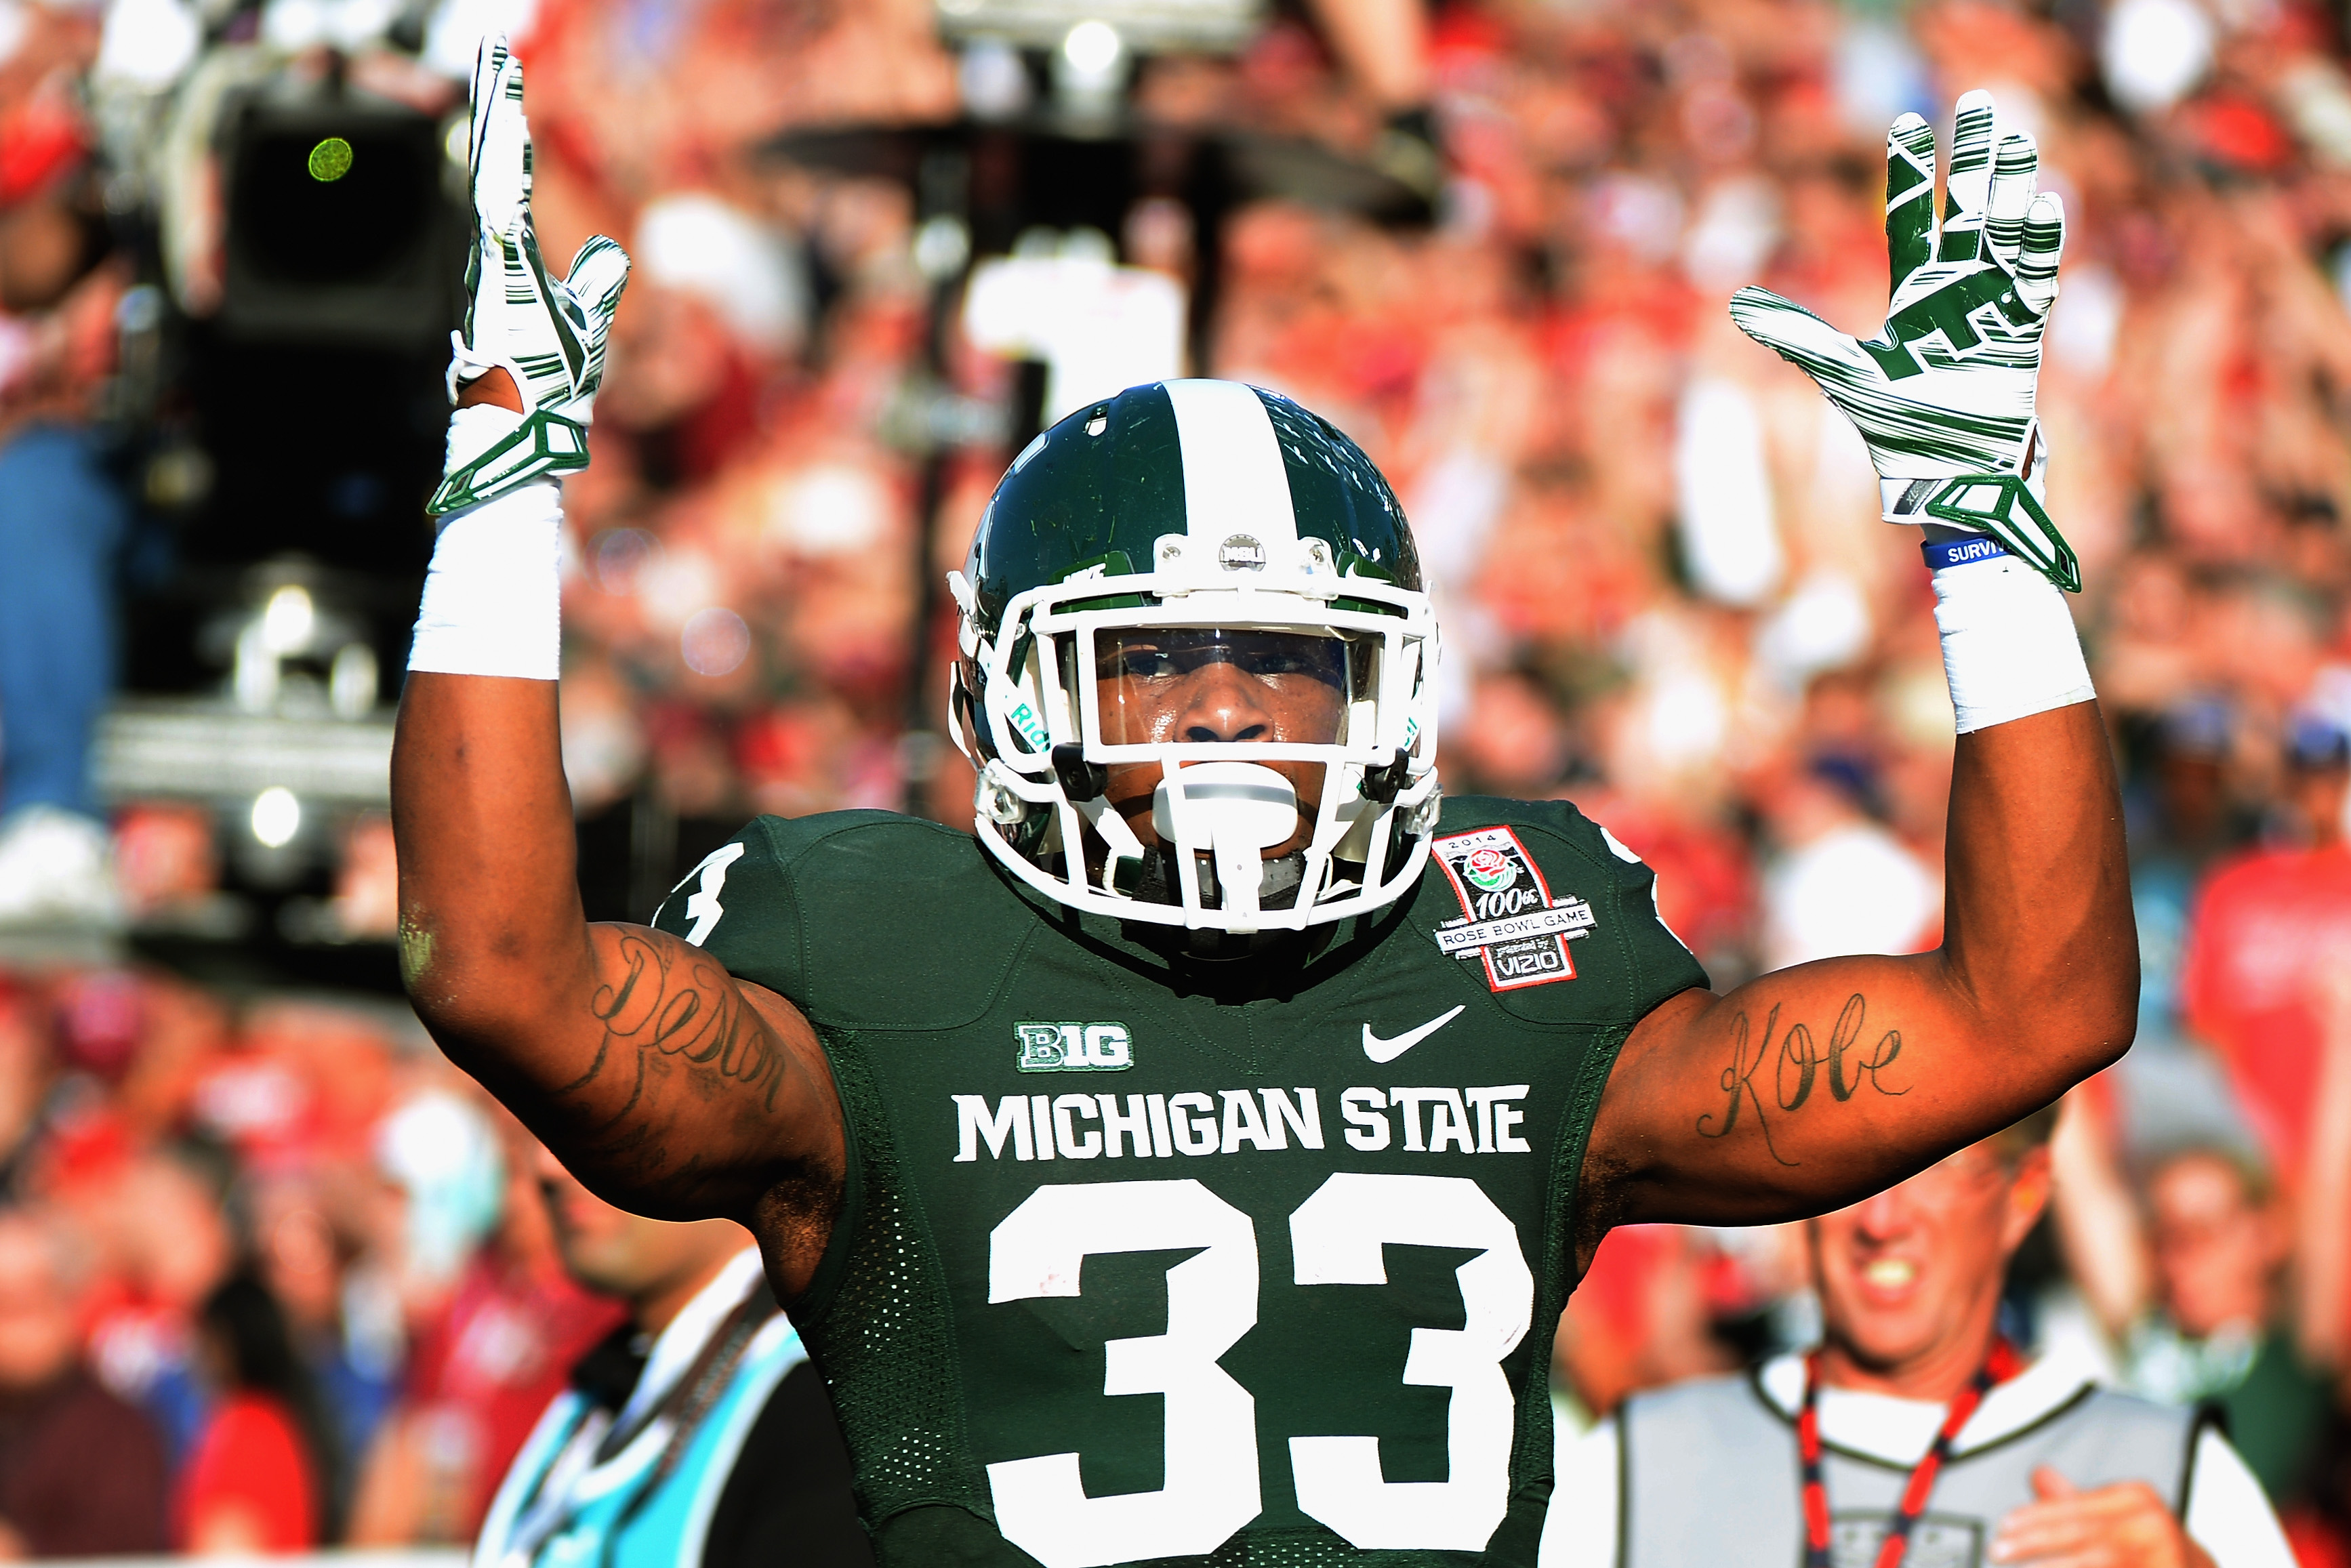 Michigan State Spartans: Running Back Jeremy Langford